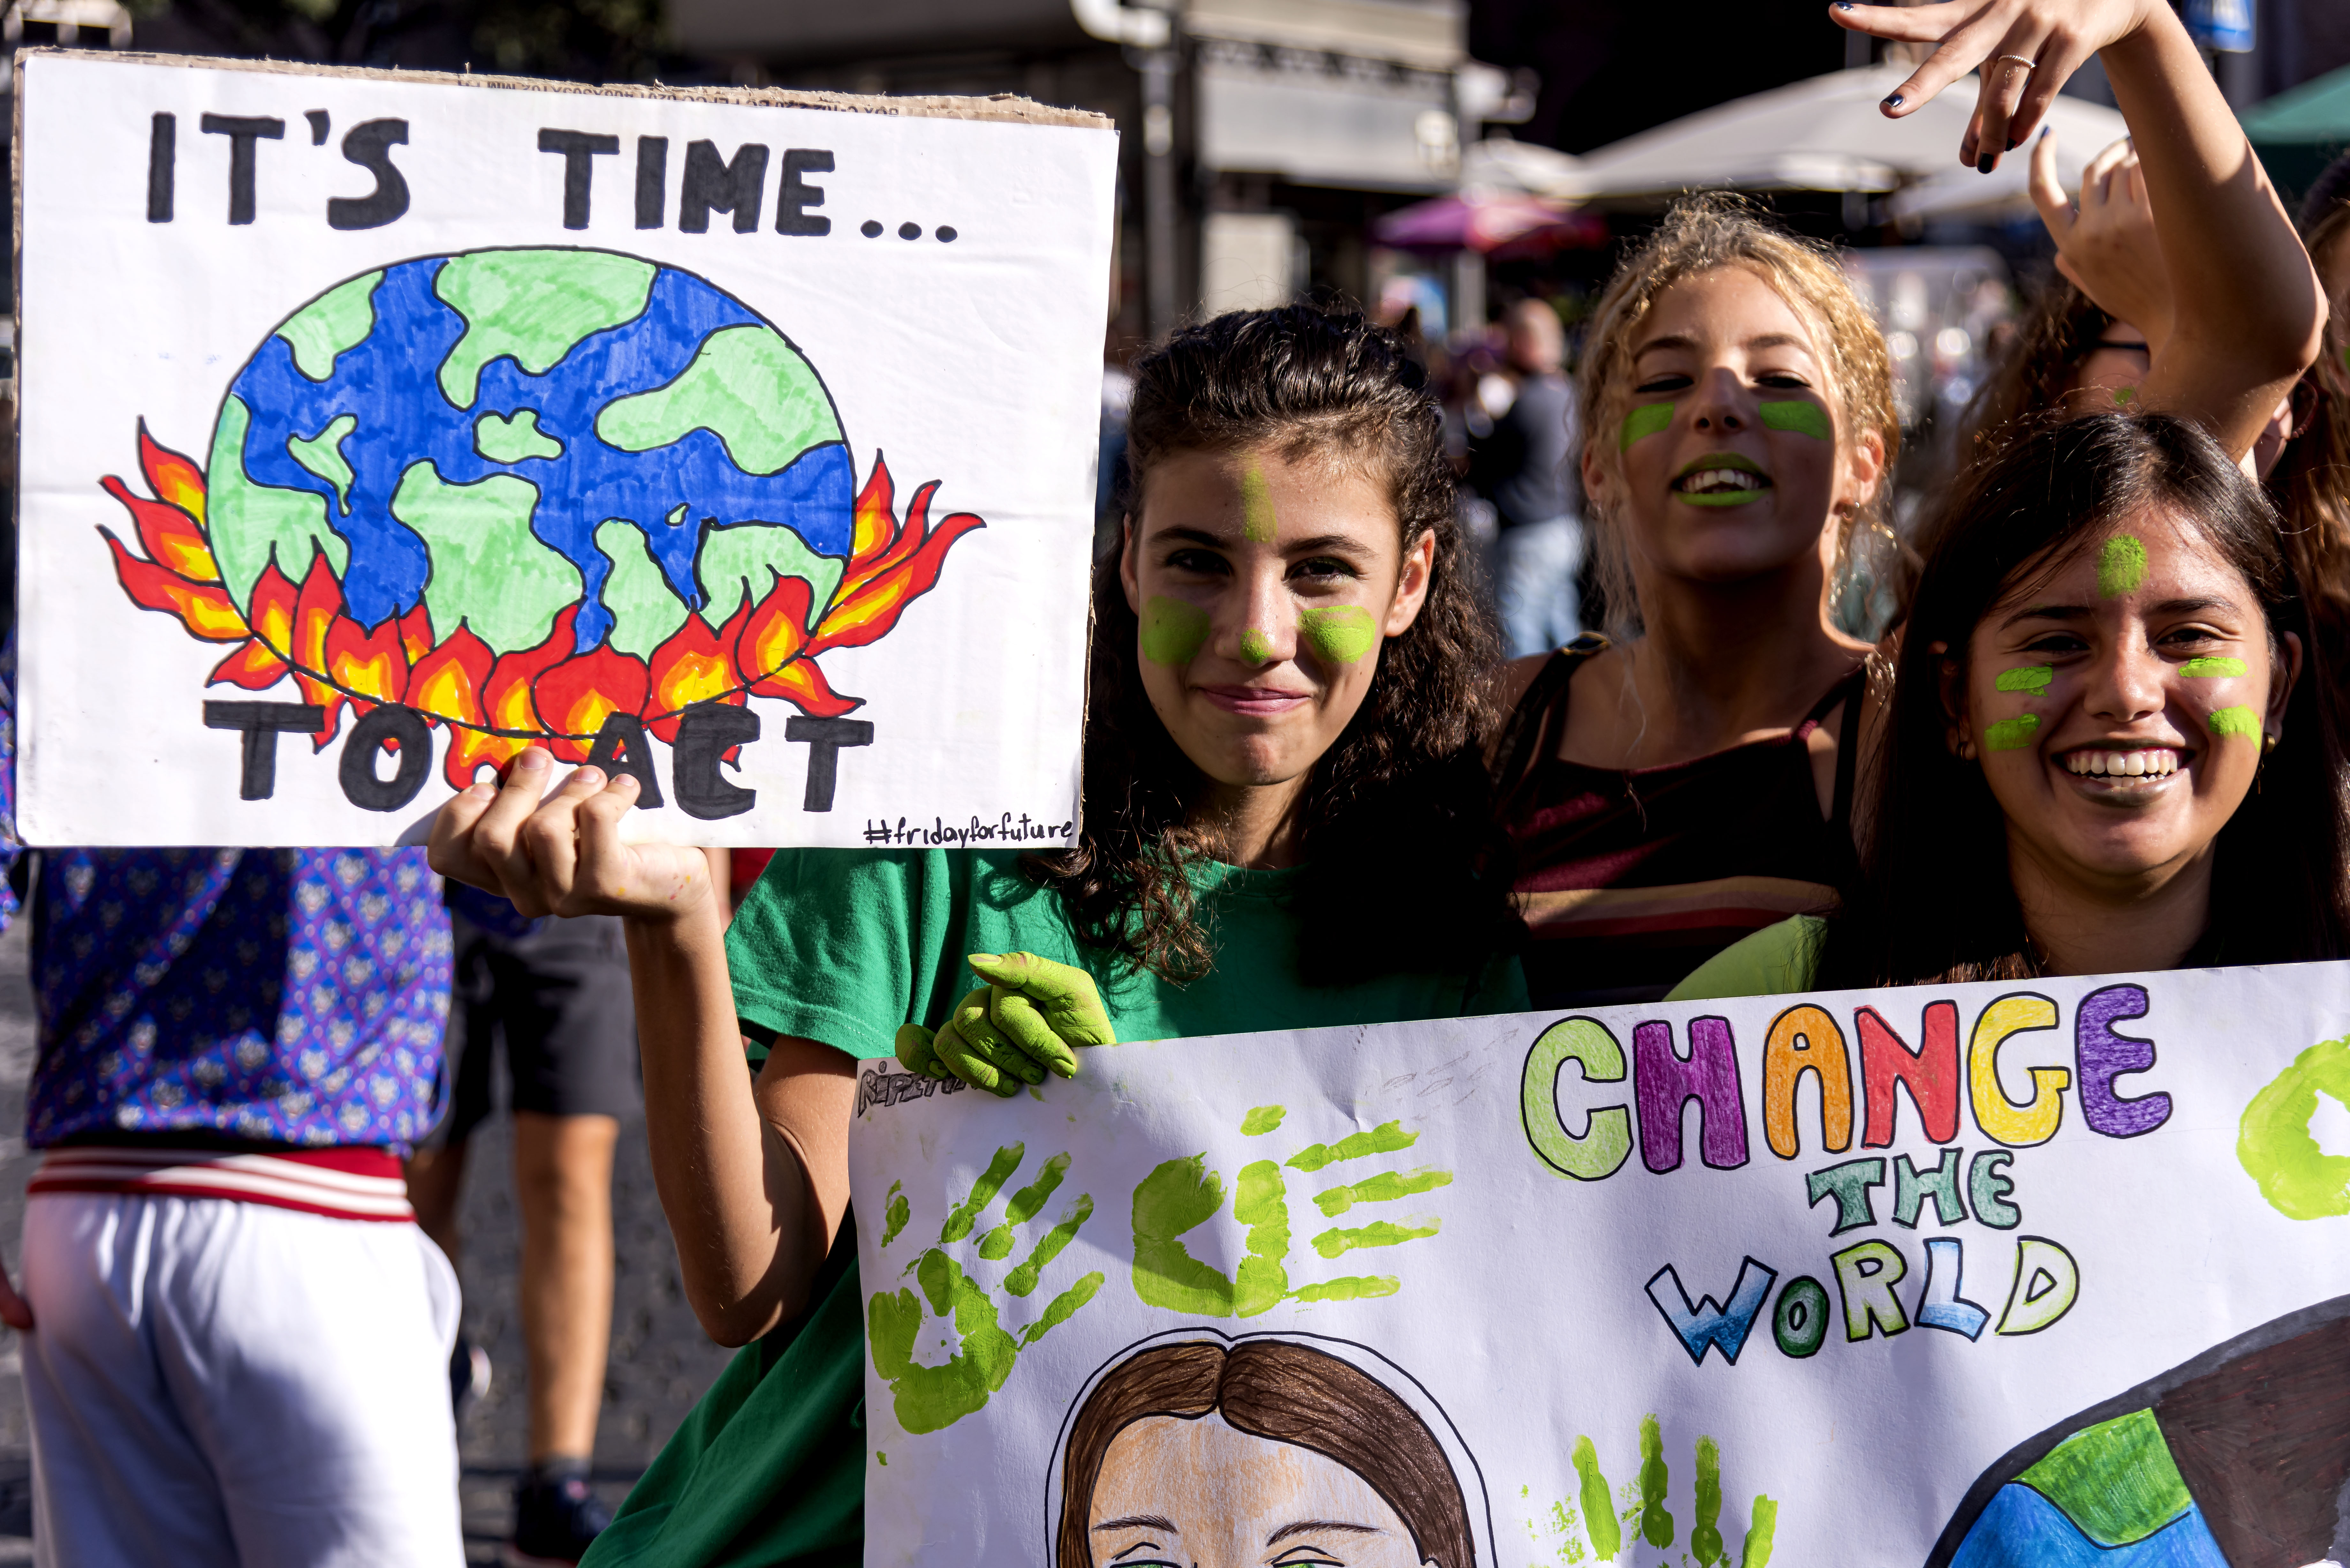 ROME, ITALY - SEPTEMBER 27: People take part in the climate march 'Fridays for Future, the Global Climate Strike  for the planet, launched by 16-year-old Greta Thunberg who has become a symbol of the fight against climate change, to demand for urgent measures and concrete action to combat climate change, global warming on September 27, 2019 in Rome, Italy. (Photo by Stefano Montesi - Corbis/  Getty Images)